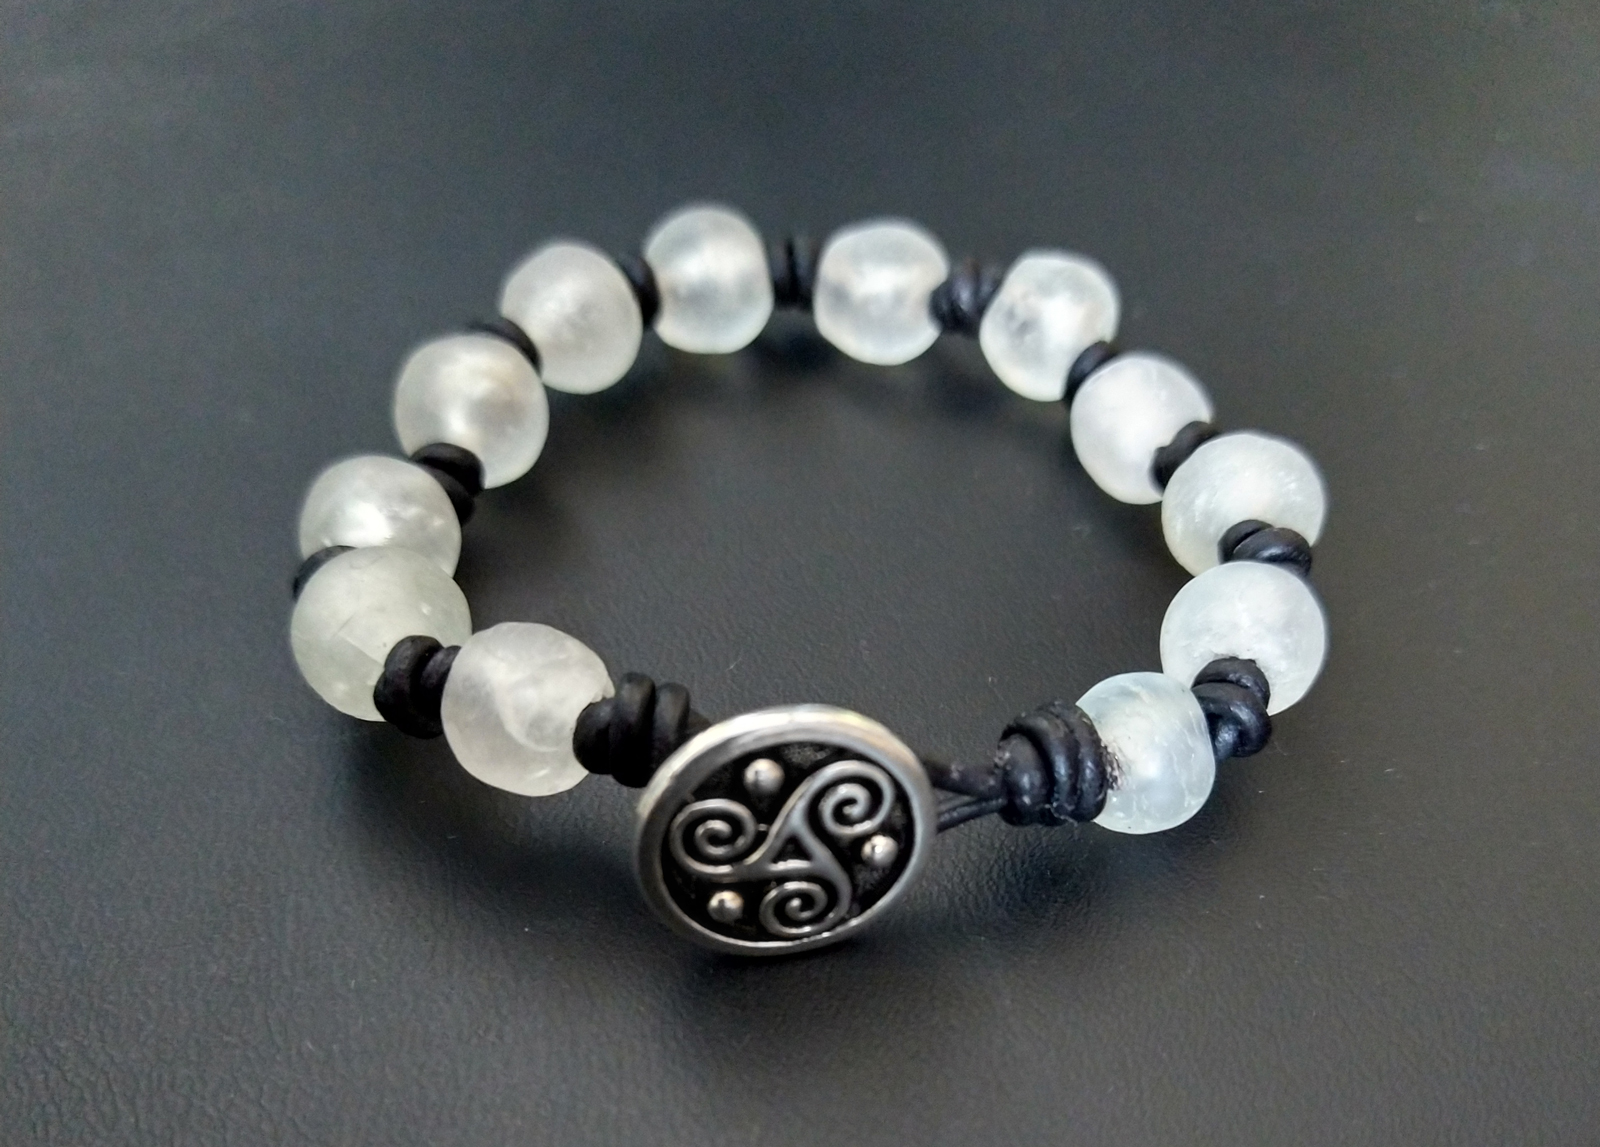 Knotted-recycled-glass-bracelet-with-black-leather-cord-button-view